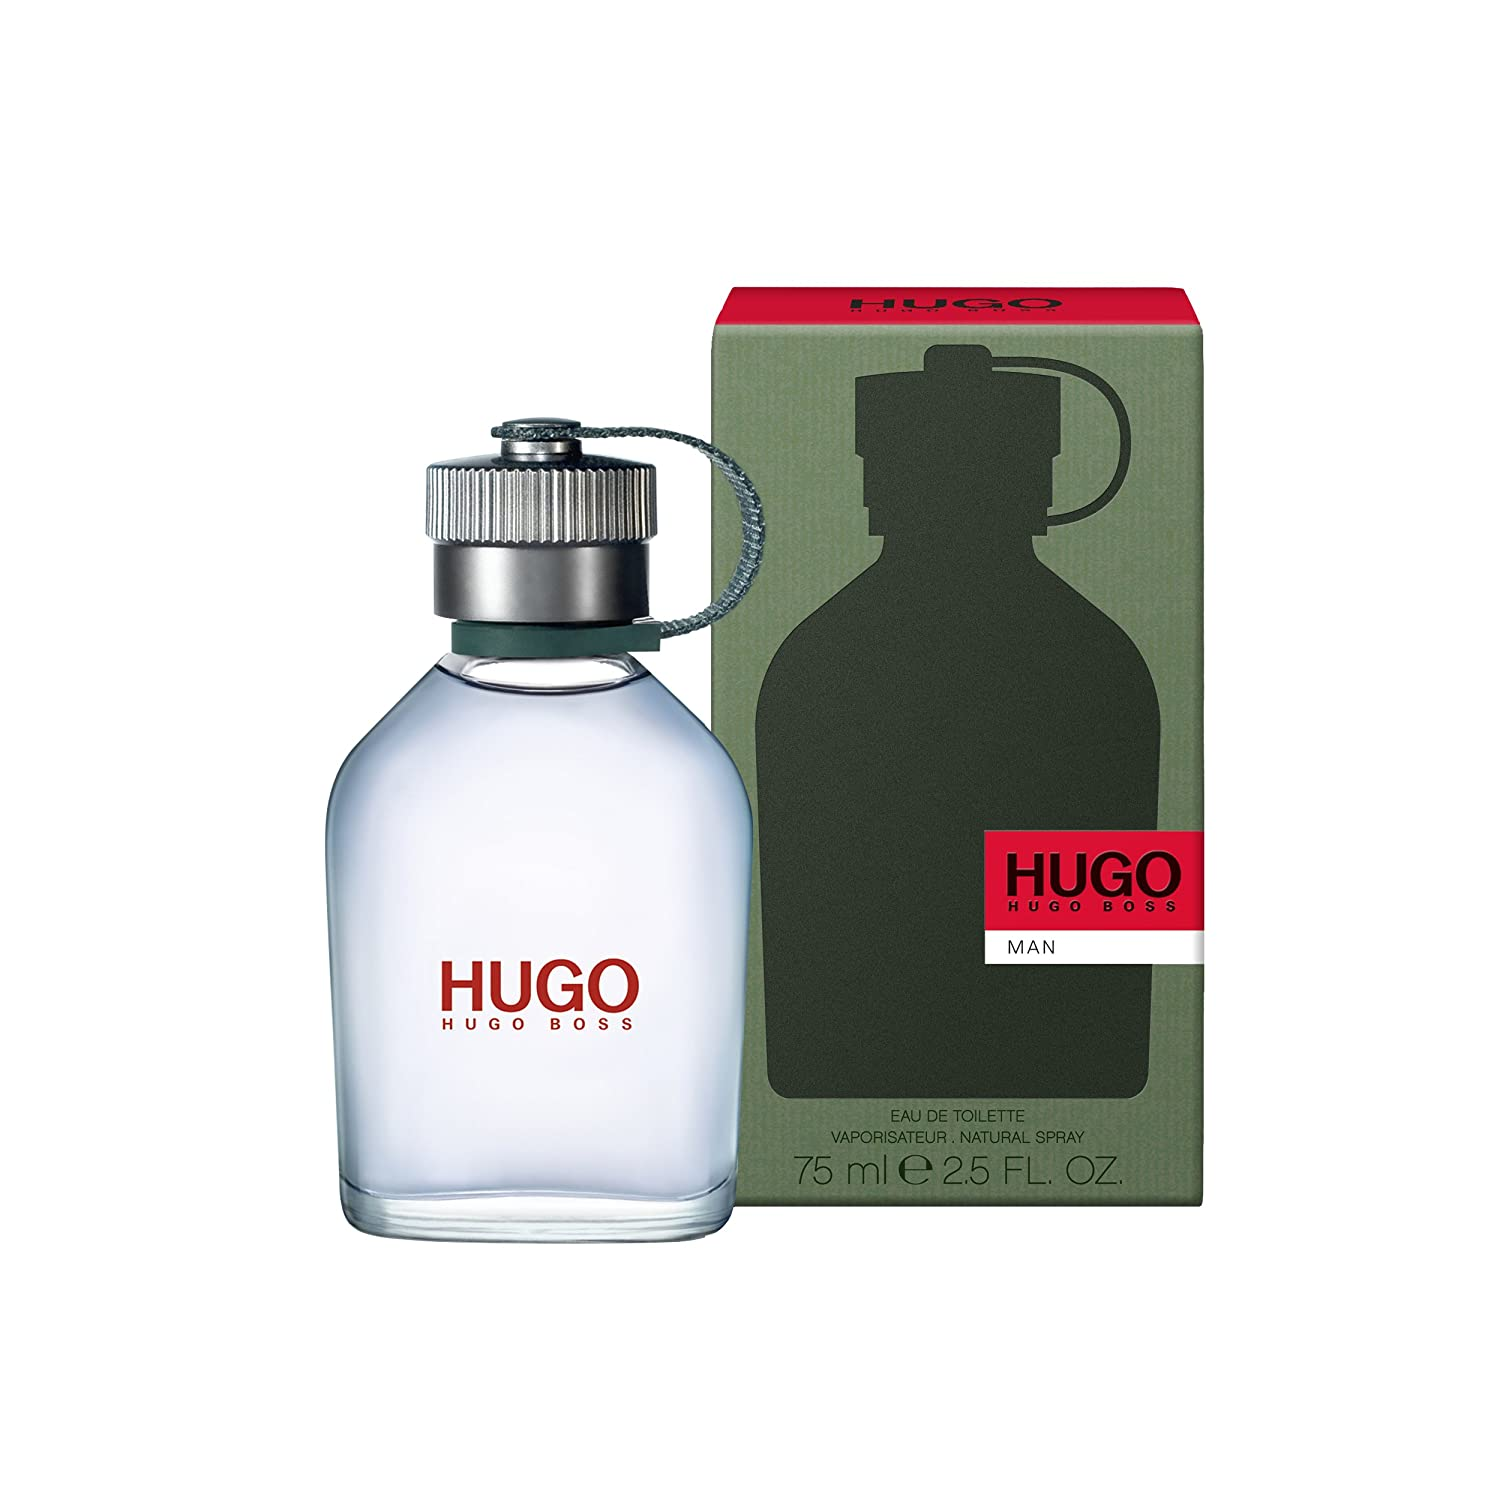 968717f626 Amazon.com: Hugo Boss MAN Eau de Toilette, 2.5 Fl Oz: HUGO BOSS: Luxury  Beauty